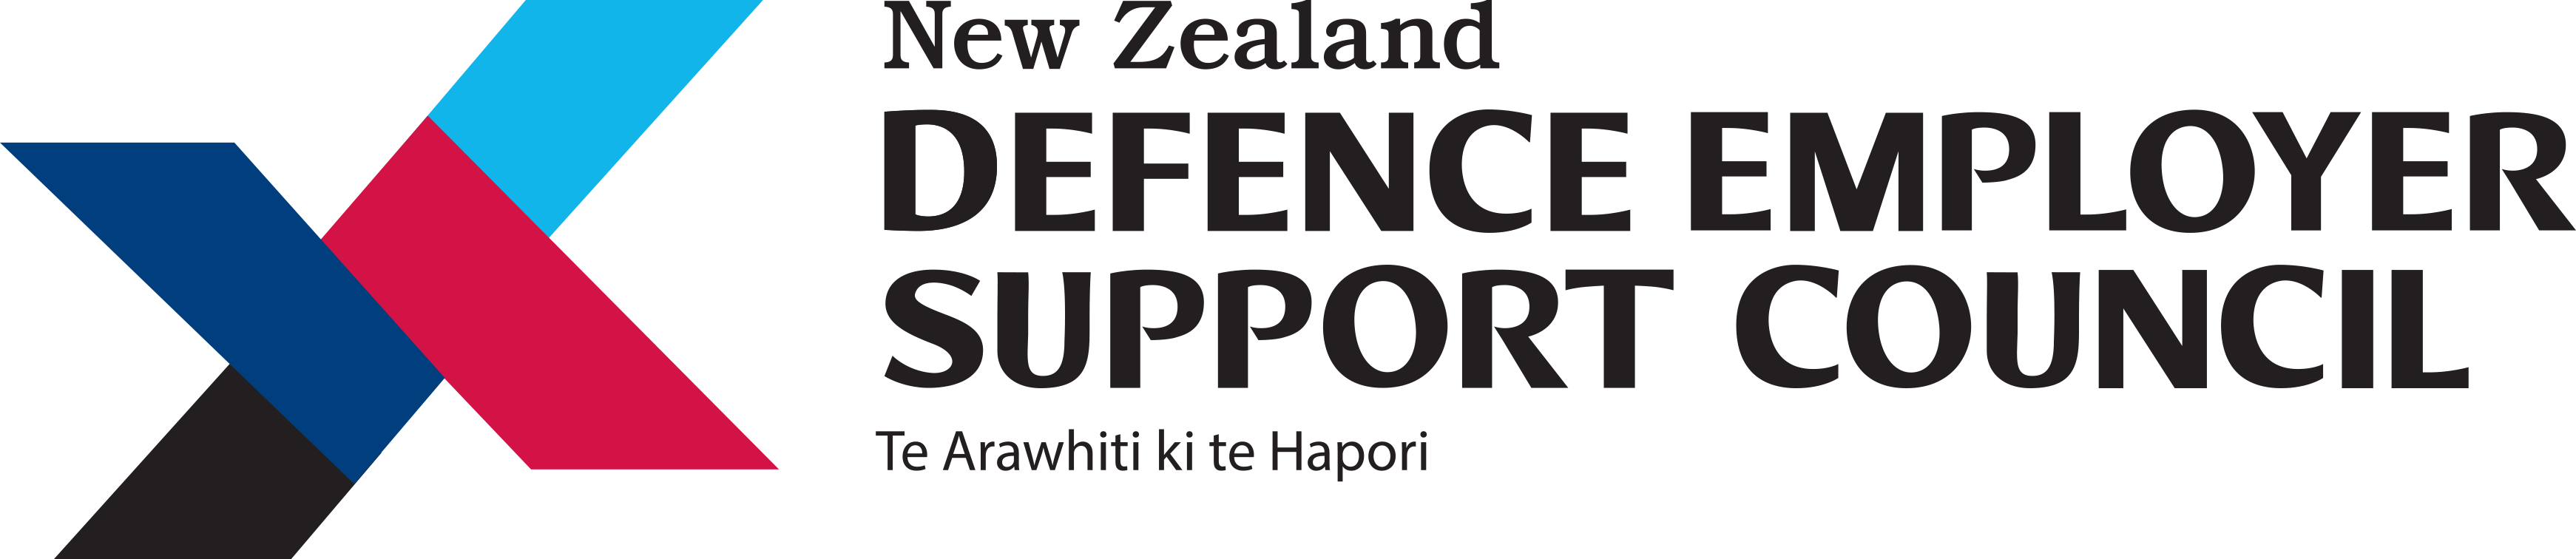 Defence Employer Support Council logo